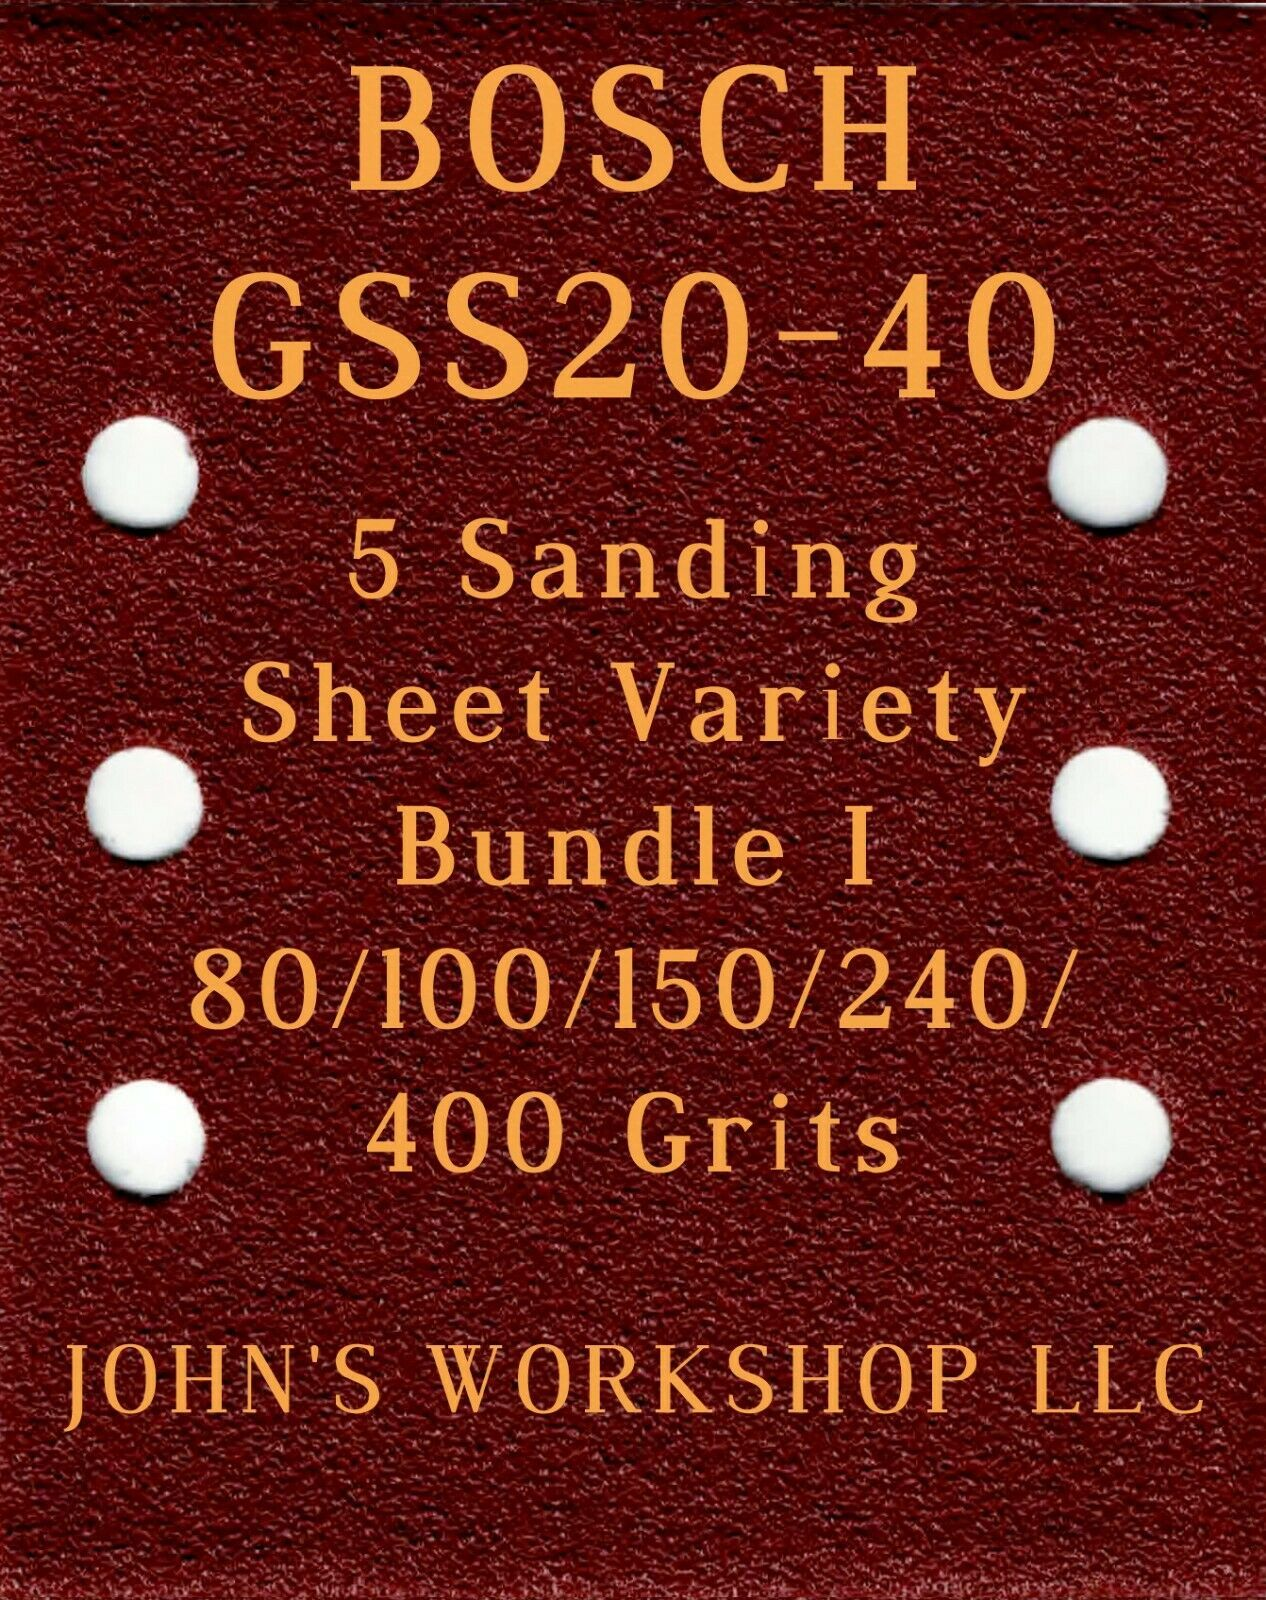 Primary image for BOSCH GSS20-40 - 80/100/150/240/400 Grits - 5 Sandpaper Variety Bundle I